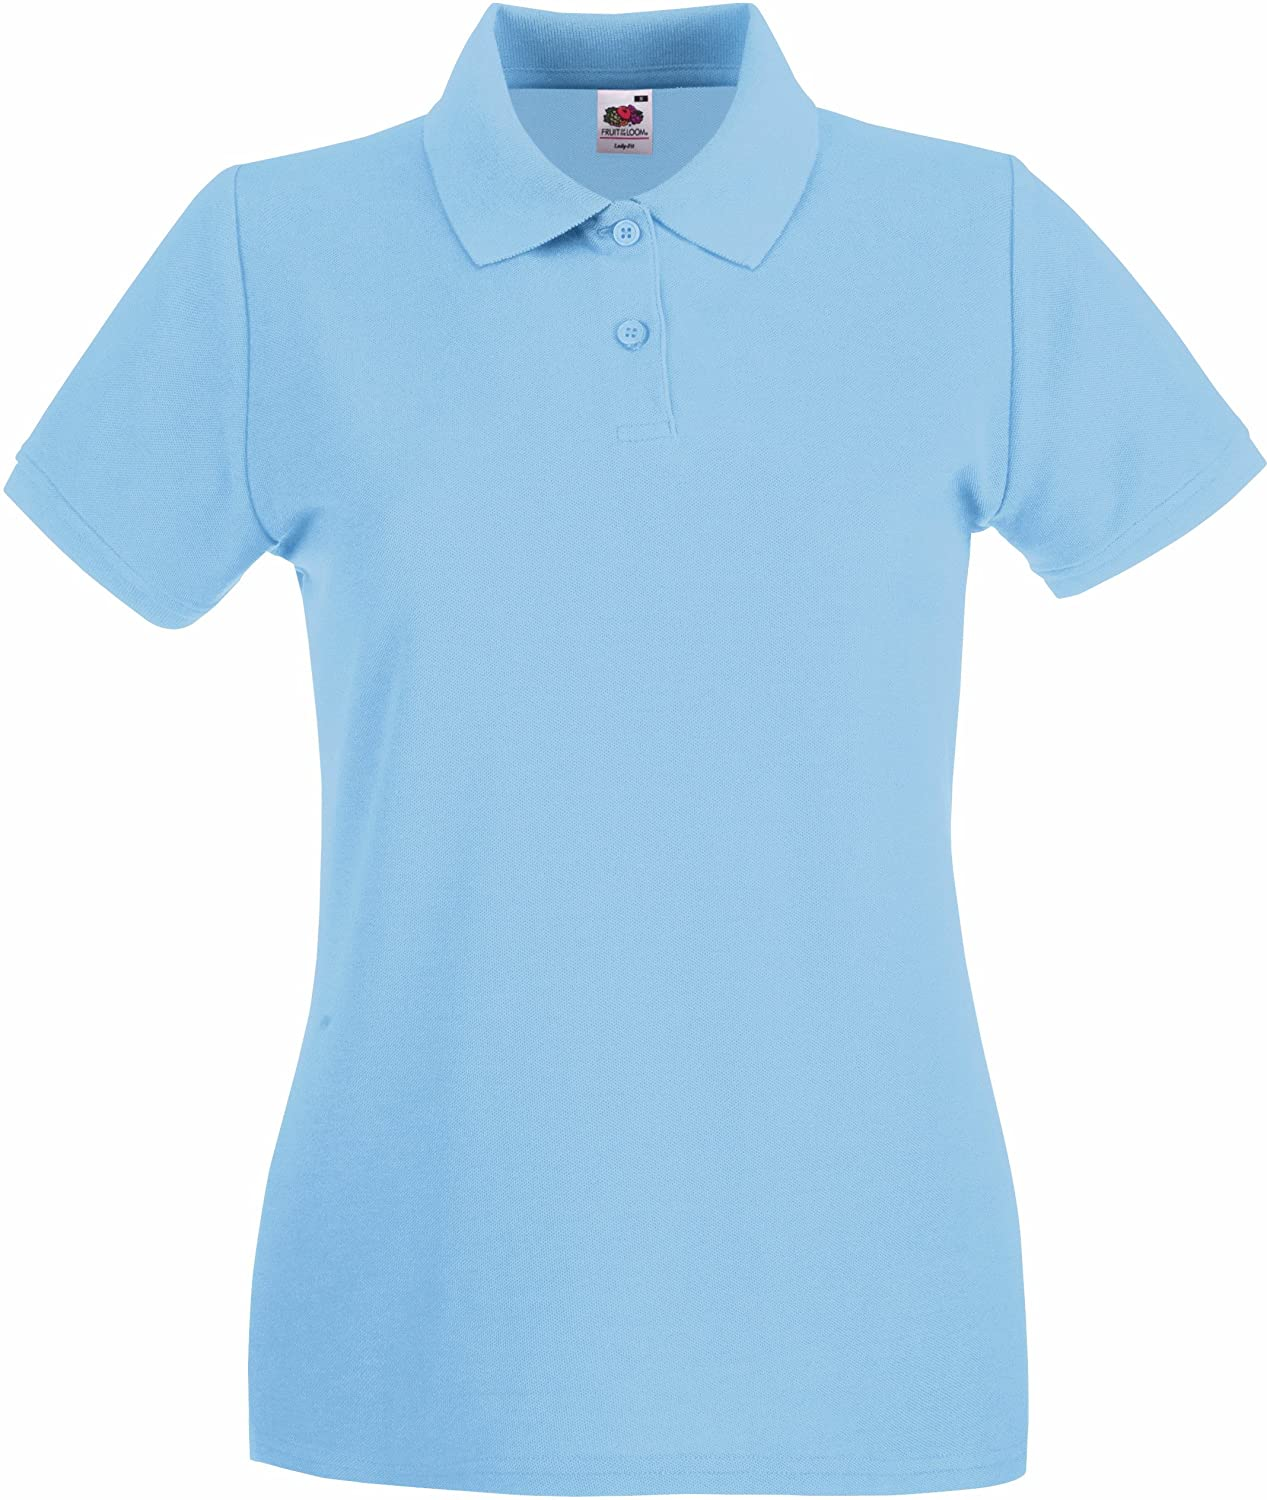 Lady-Fit Premium Poloshirt XL / 16, Sky Blue